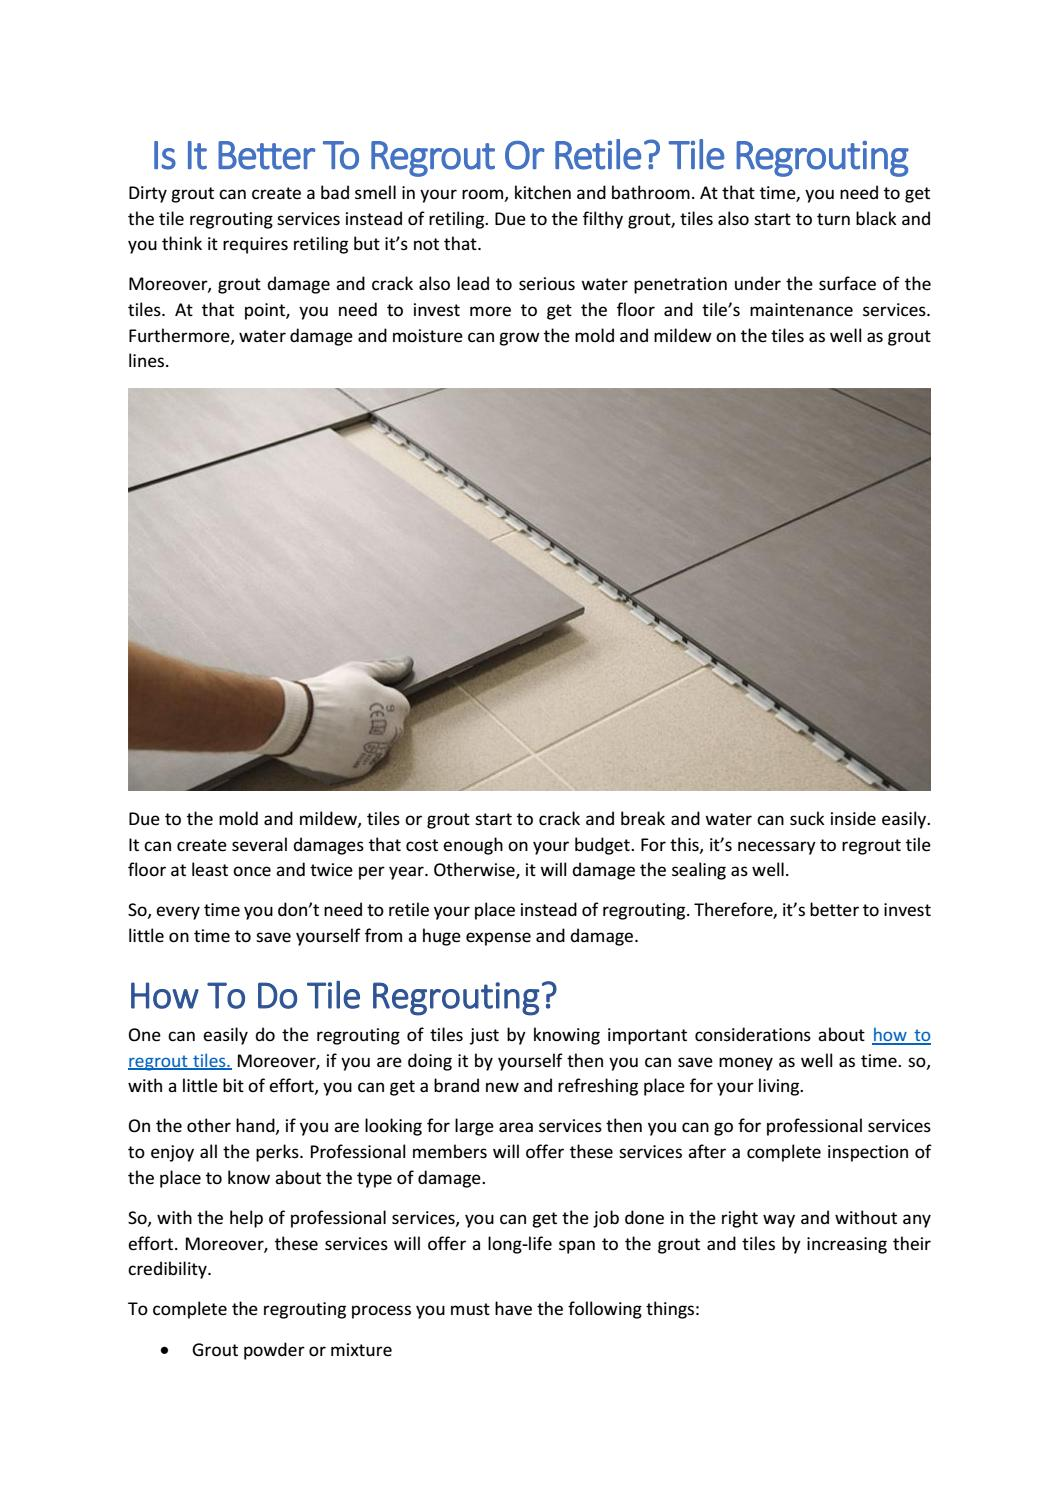 to regrout or retile tile regrouting